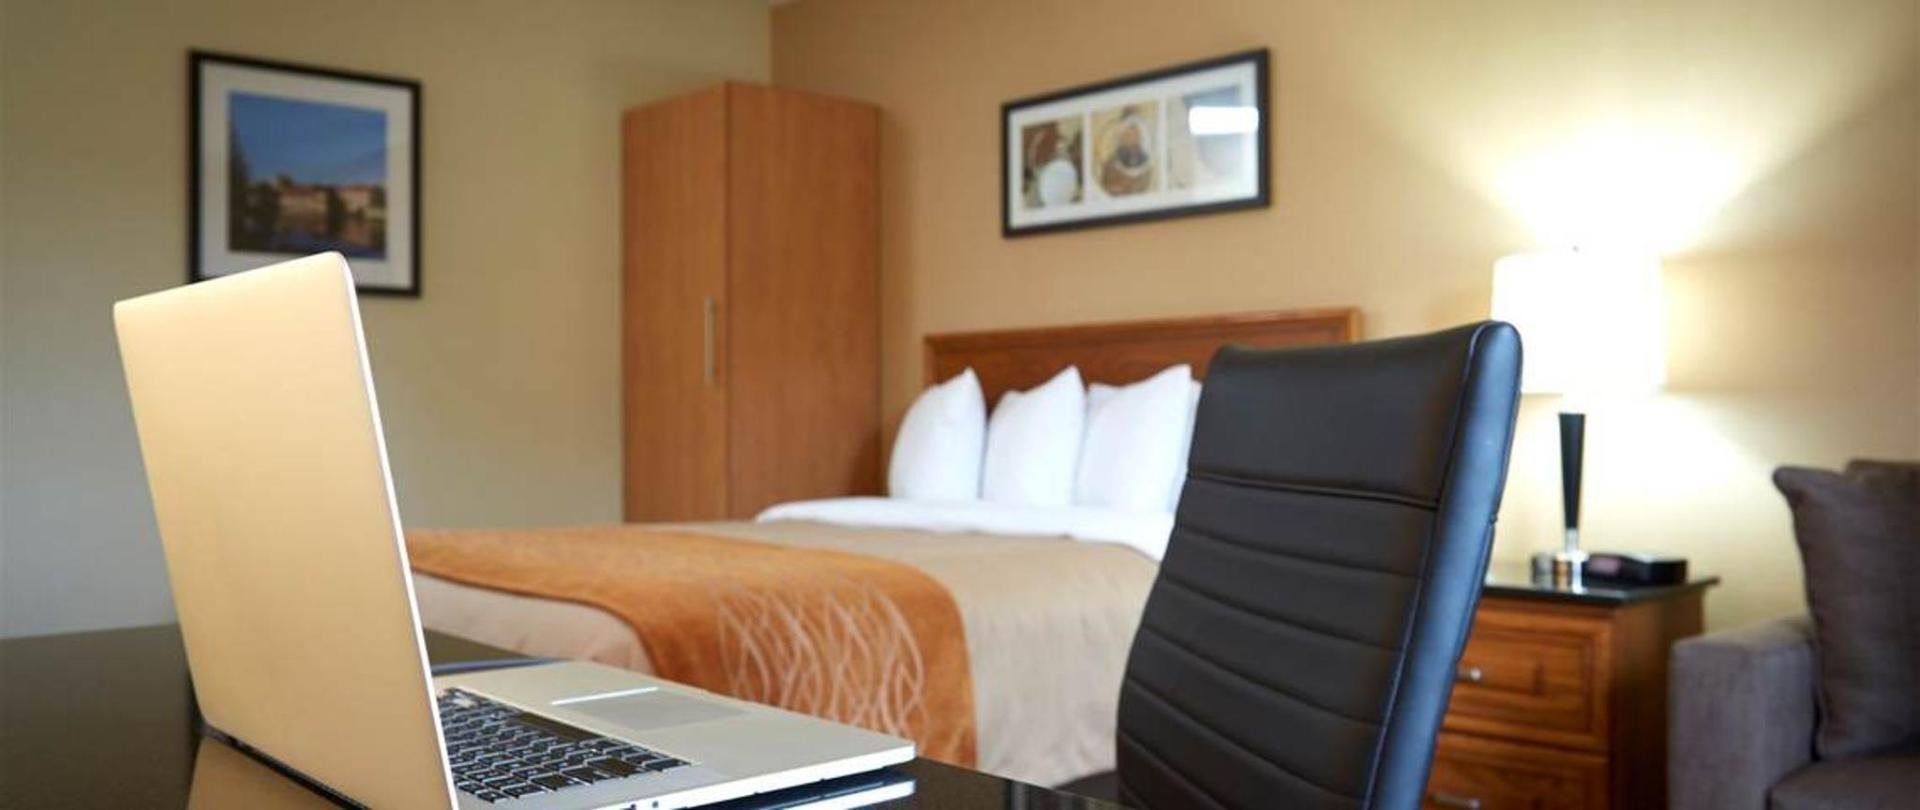 always-connected-with-free-wi-fi-in-all-guestrooms.jpg.1140x481_default.jpg